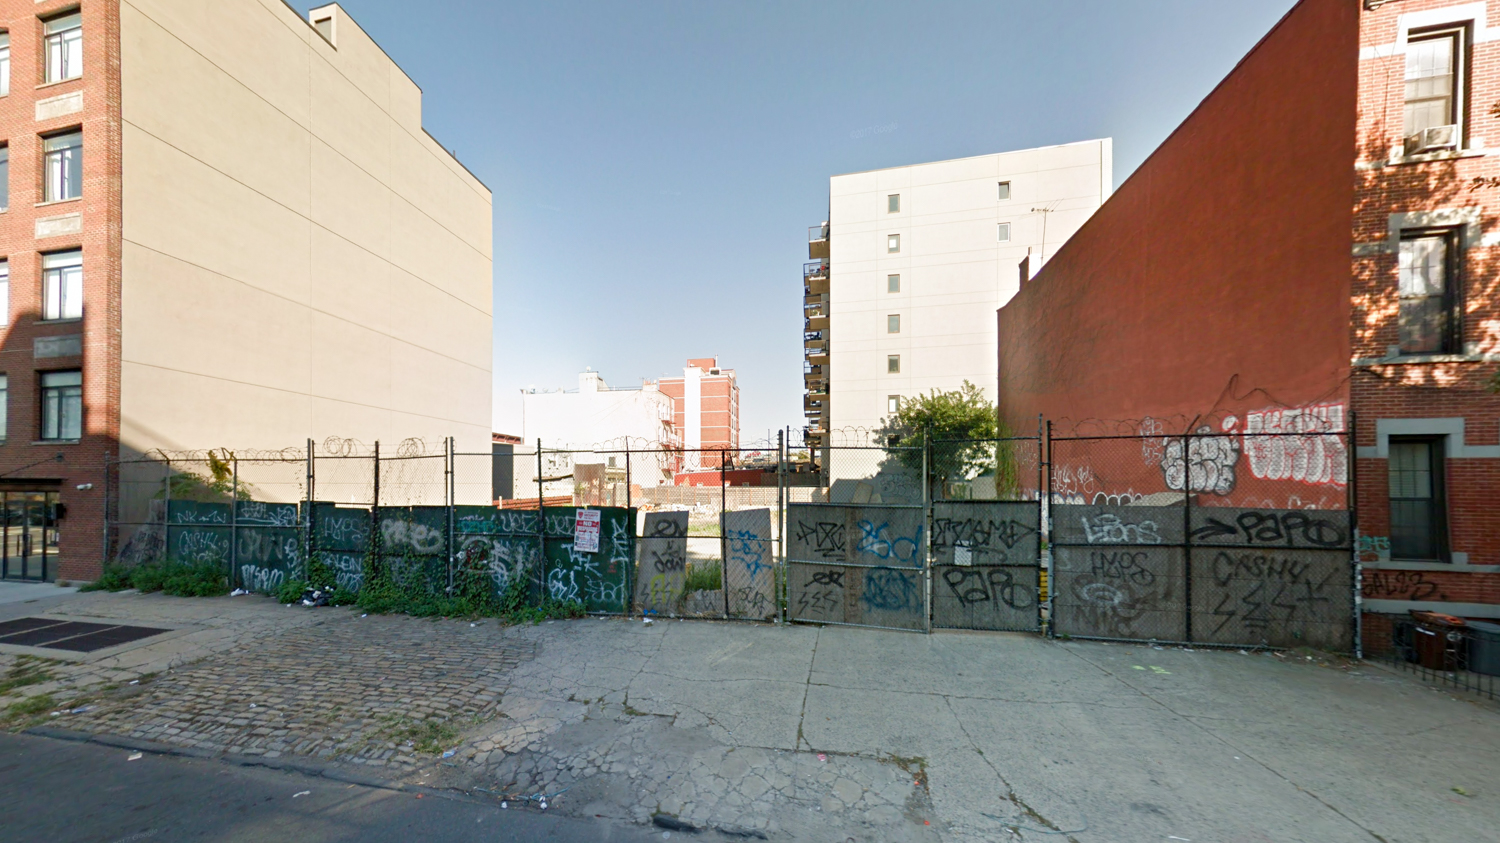 526 Union Avenue, via Google Maps